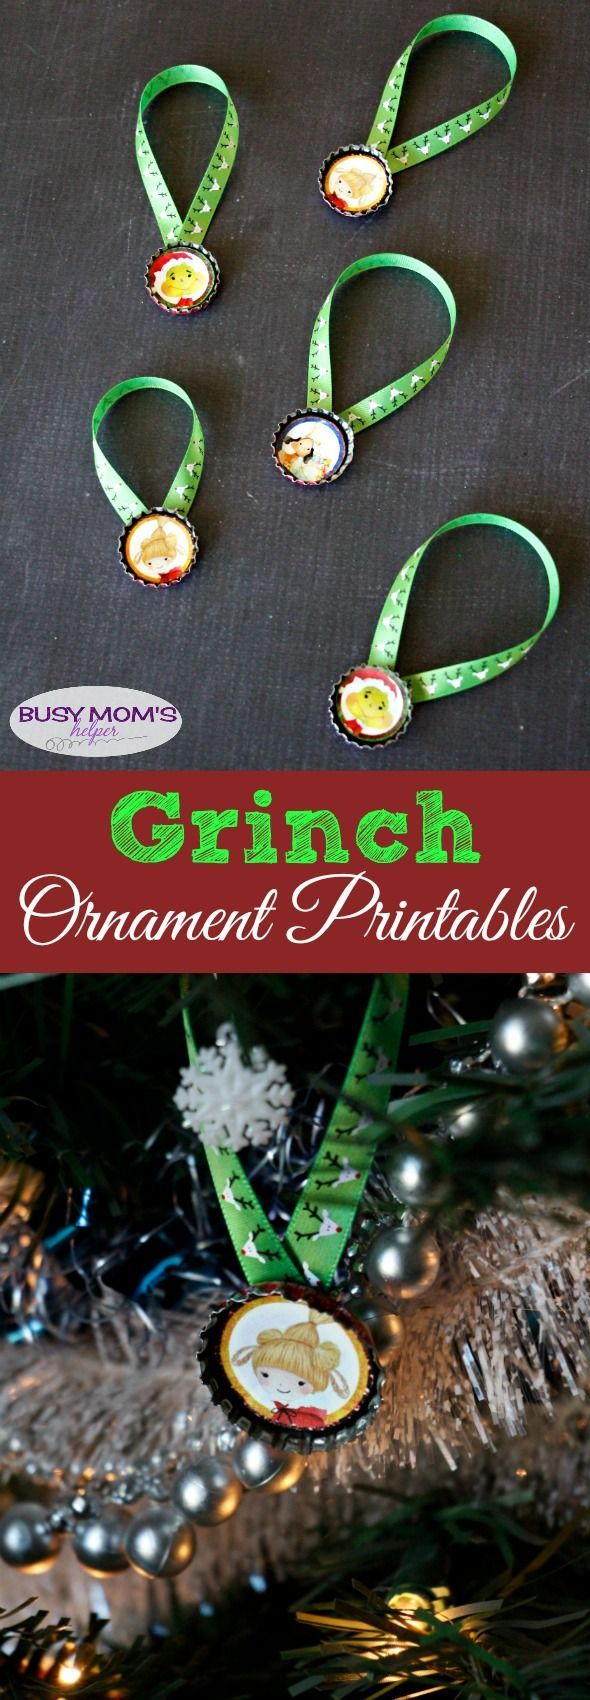 Grinch outdoor christmas decorations - Bottle Cap Grinch Ornament Printables